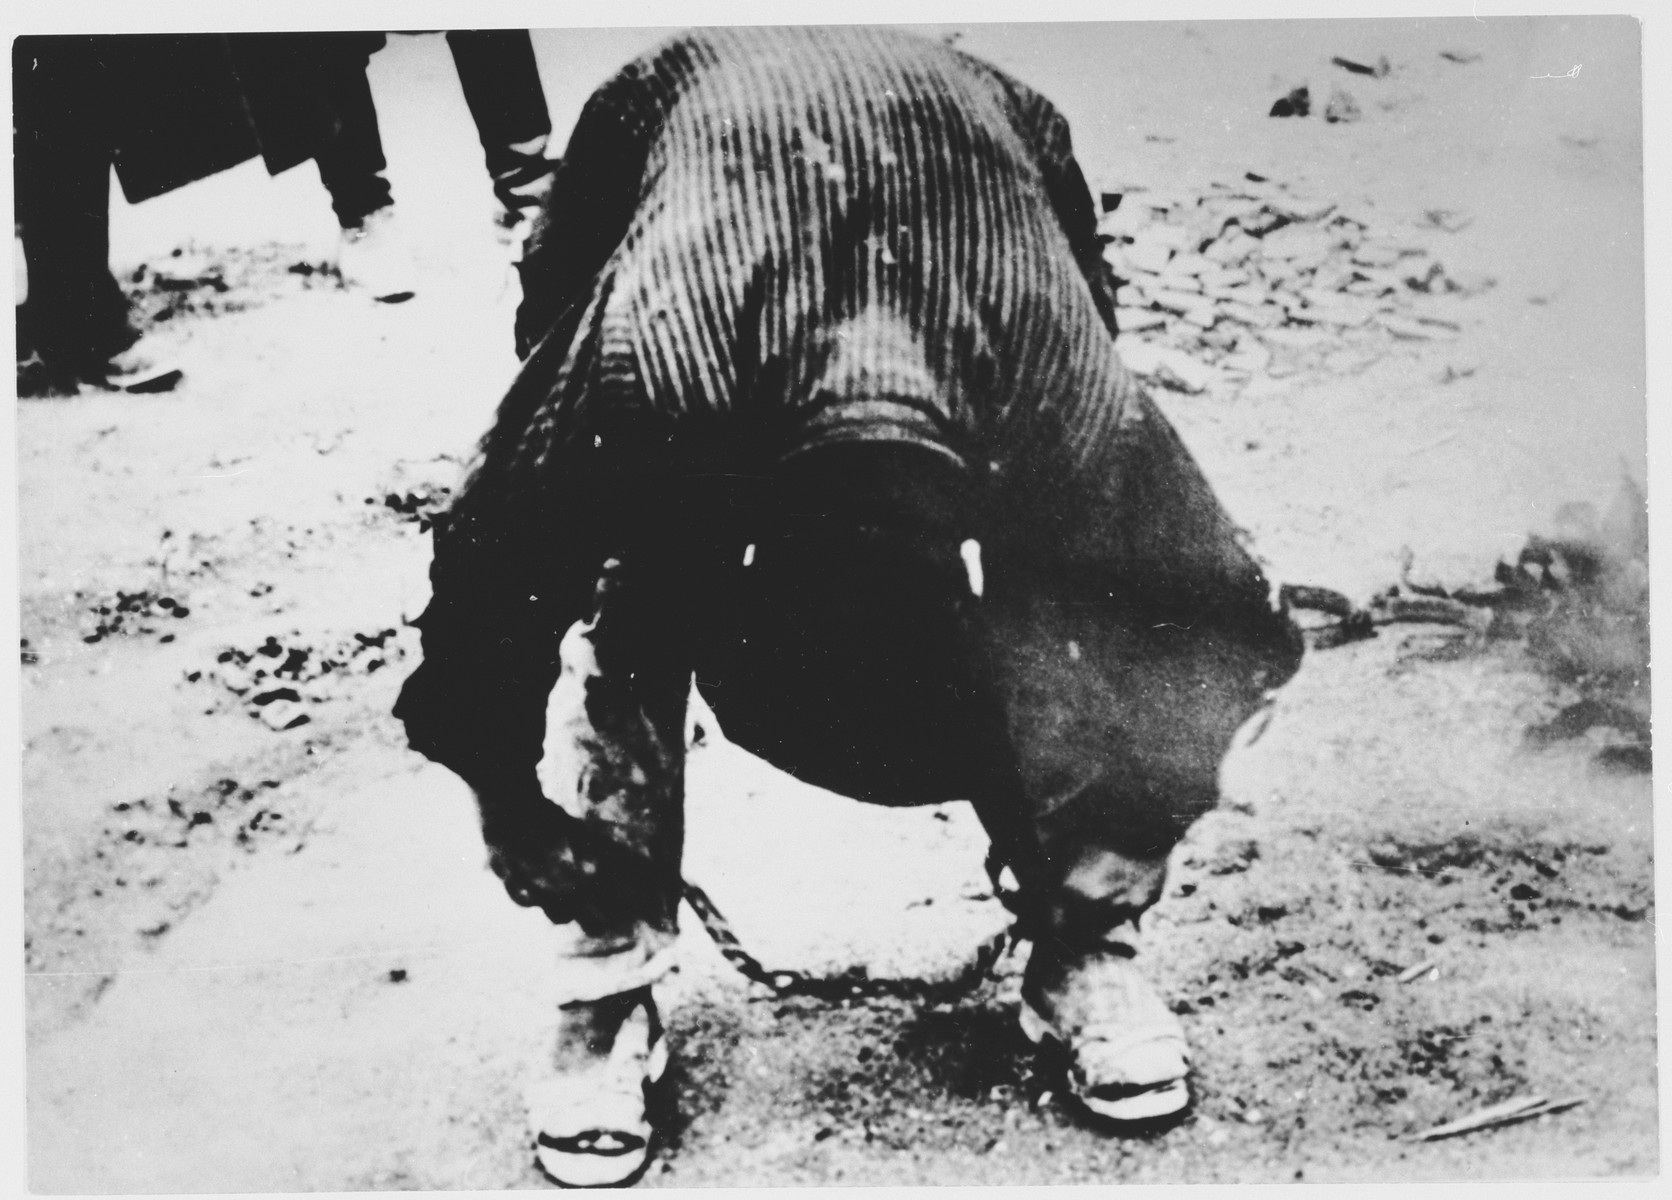 A male inmate of the Stara Gradiska concentration camp bends over to adjust his leg irons.  The photograph was taken during an official visit of a German commission to the concentration camp in the summer of 1942.